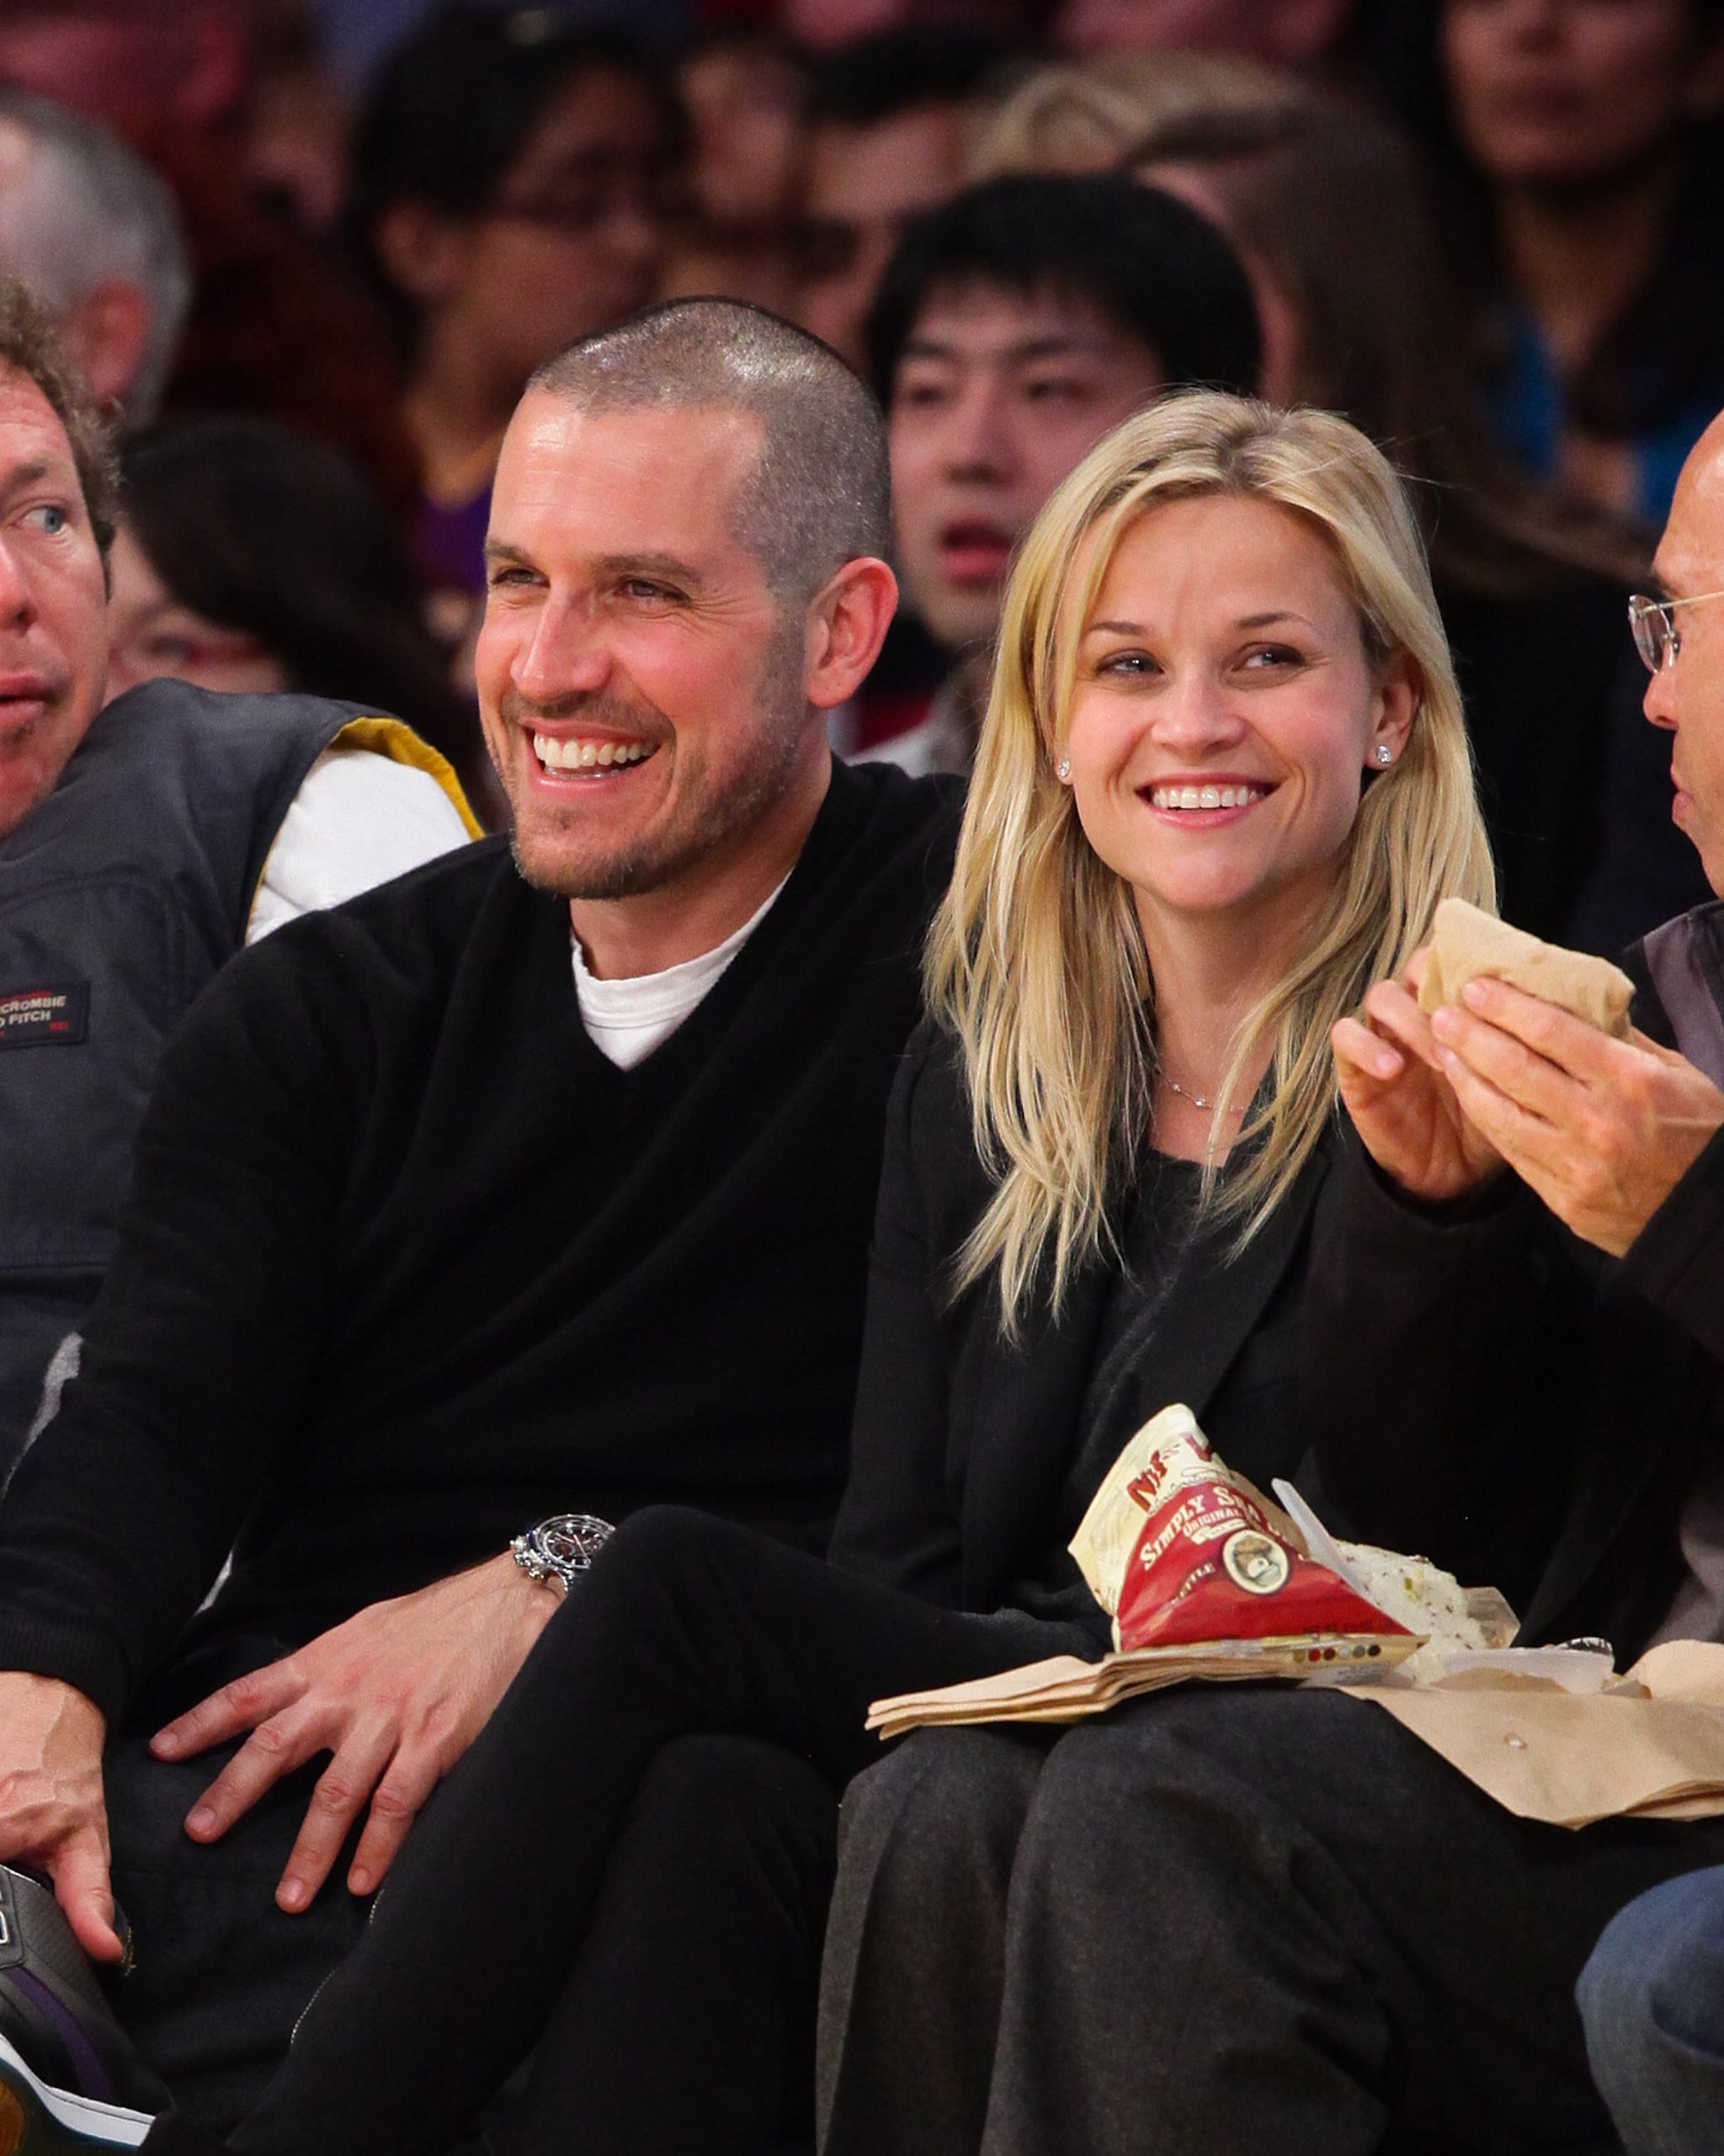 Engaged Reese Witherspoon And Jim Toth Join David Beckham Courtside At Lakers Game